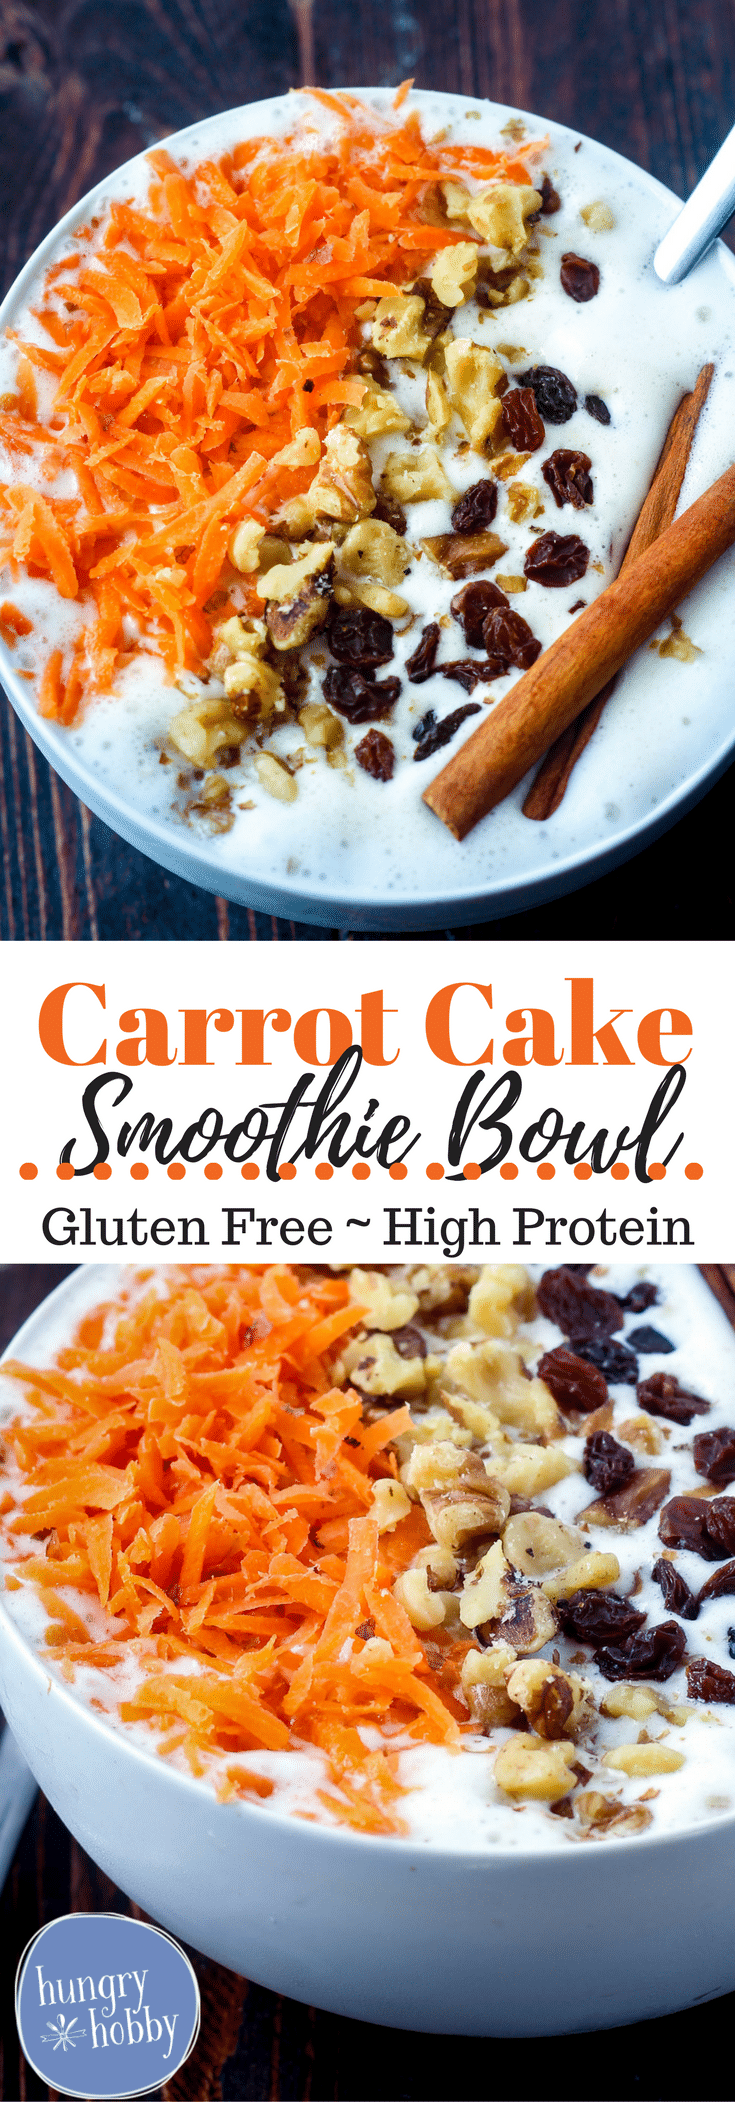 A creamy vanilla cinnamon smoothie bowl topped with all the carrot cake flavor of crunchy bites of carrots and walnuts plus sweet chewy raisins.  High Protein, Gluten-Free, Vegetarian, Vegan Option